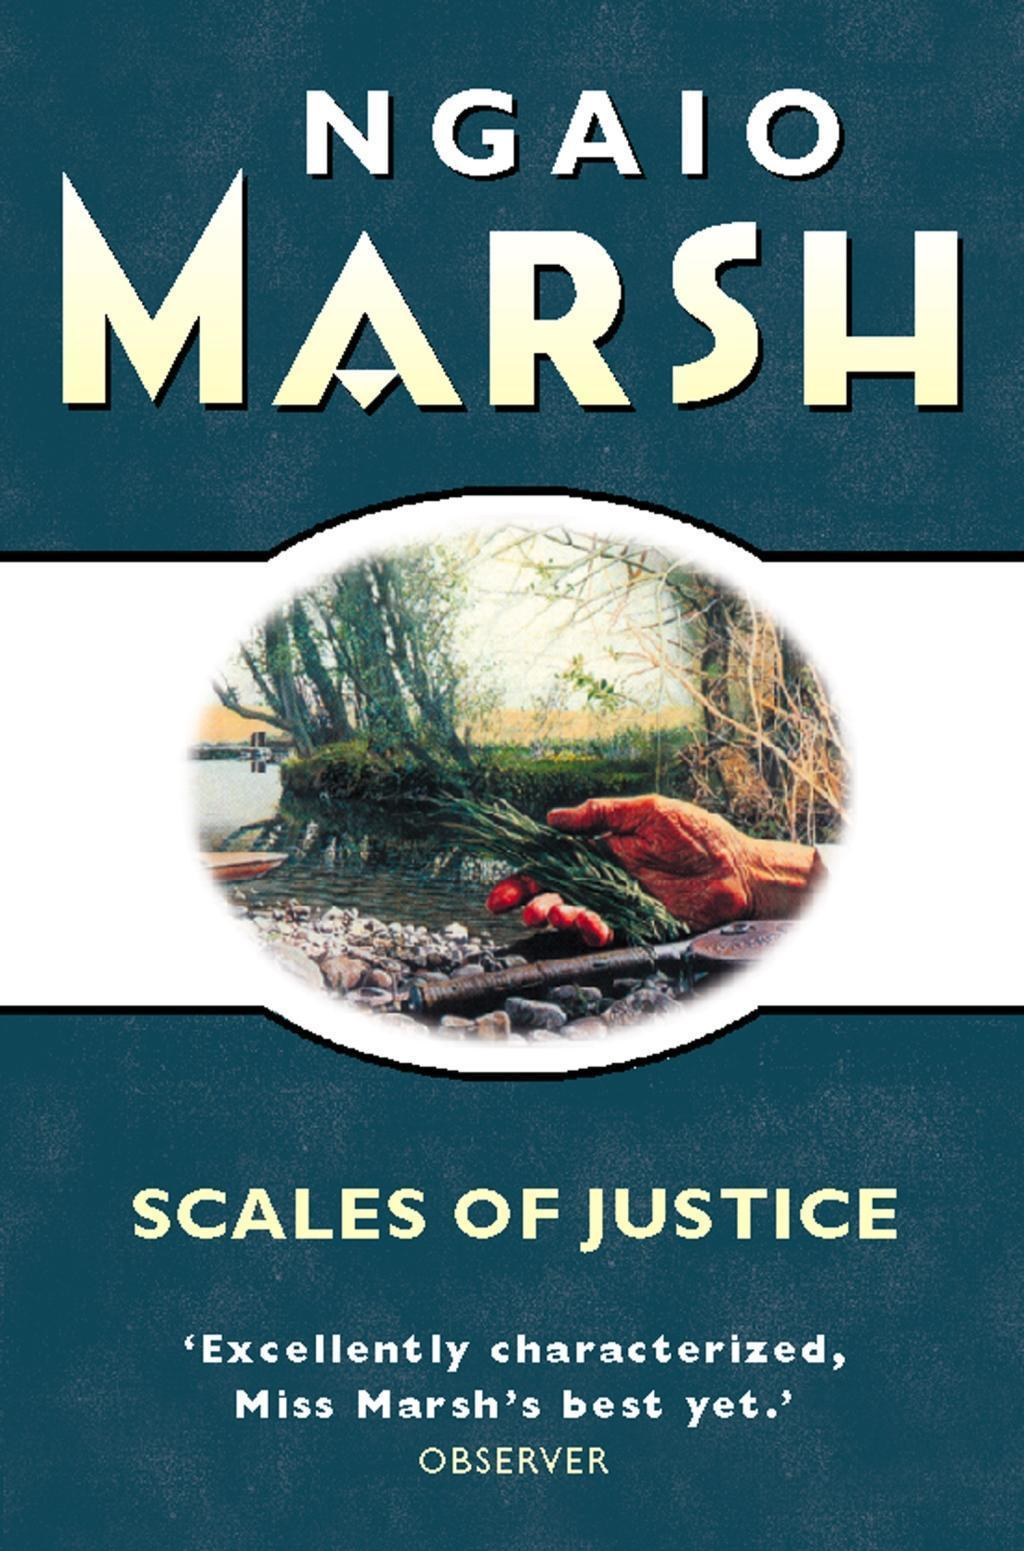 Scales of Justice (The Ngaio Marsh Collection)